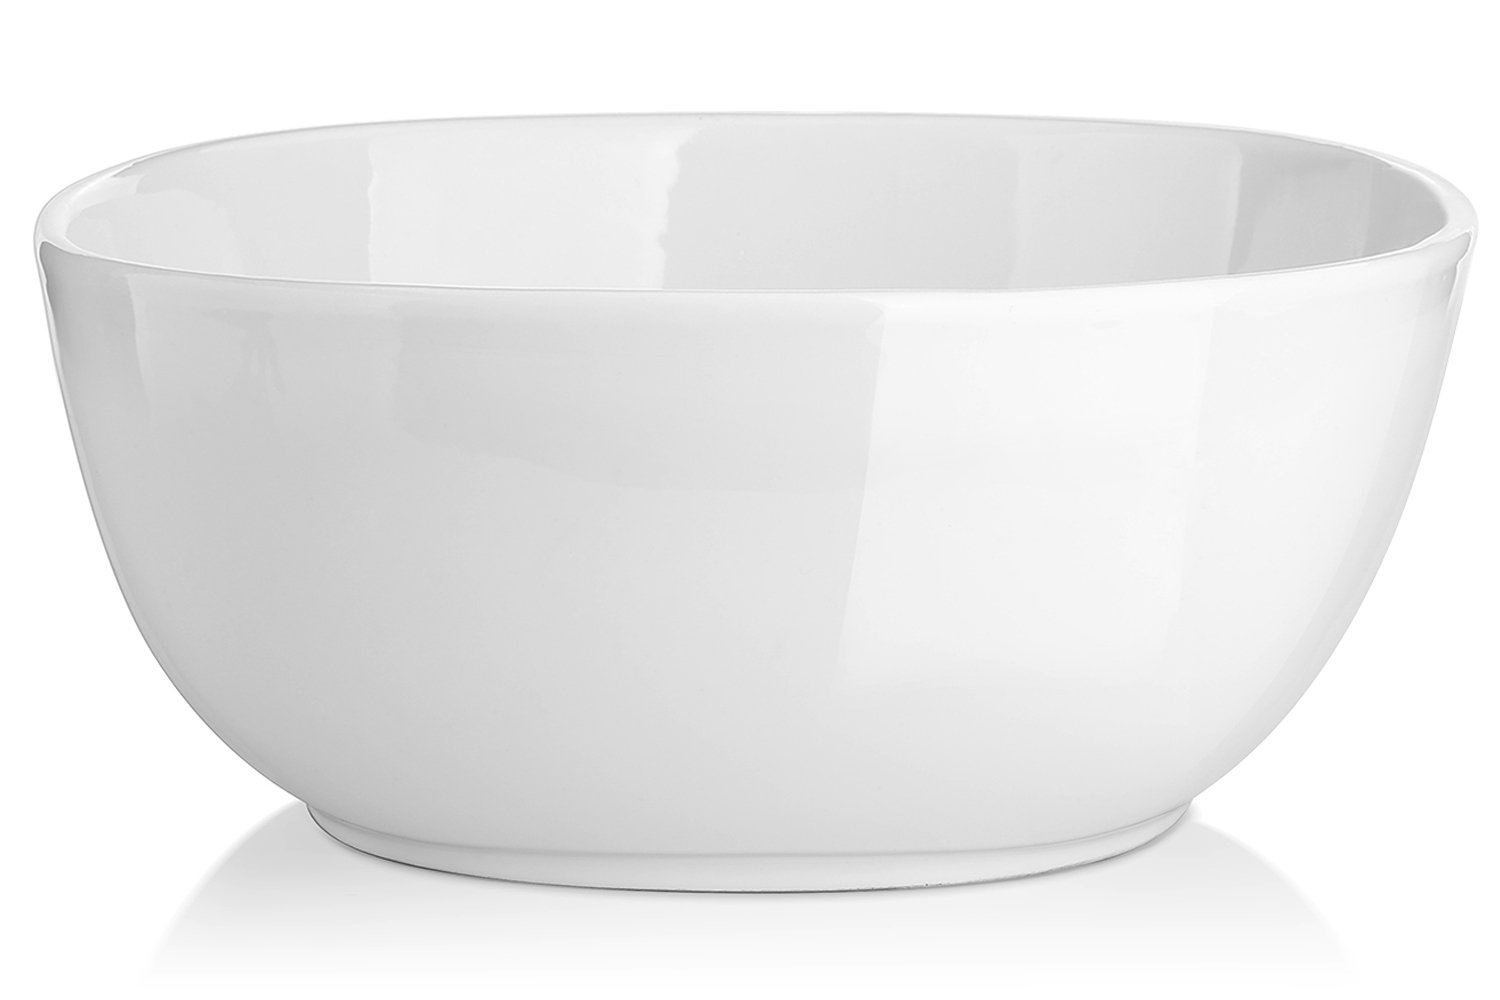 DOWAN 3-Packs Porcelain Serving/Salad Bowls, 2.4 Quart White Fine Large Soup Bowl